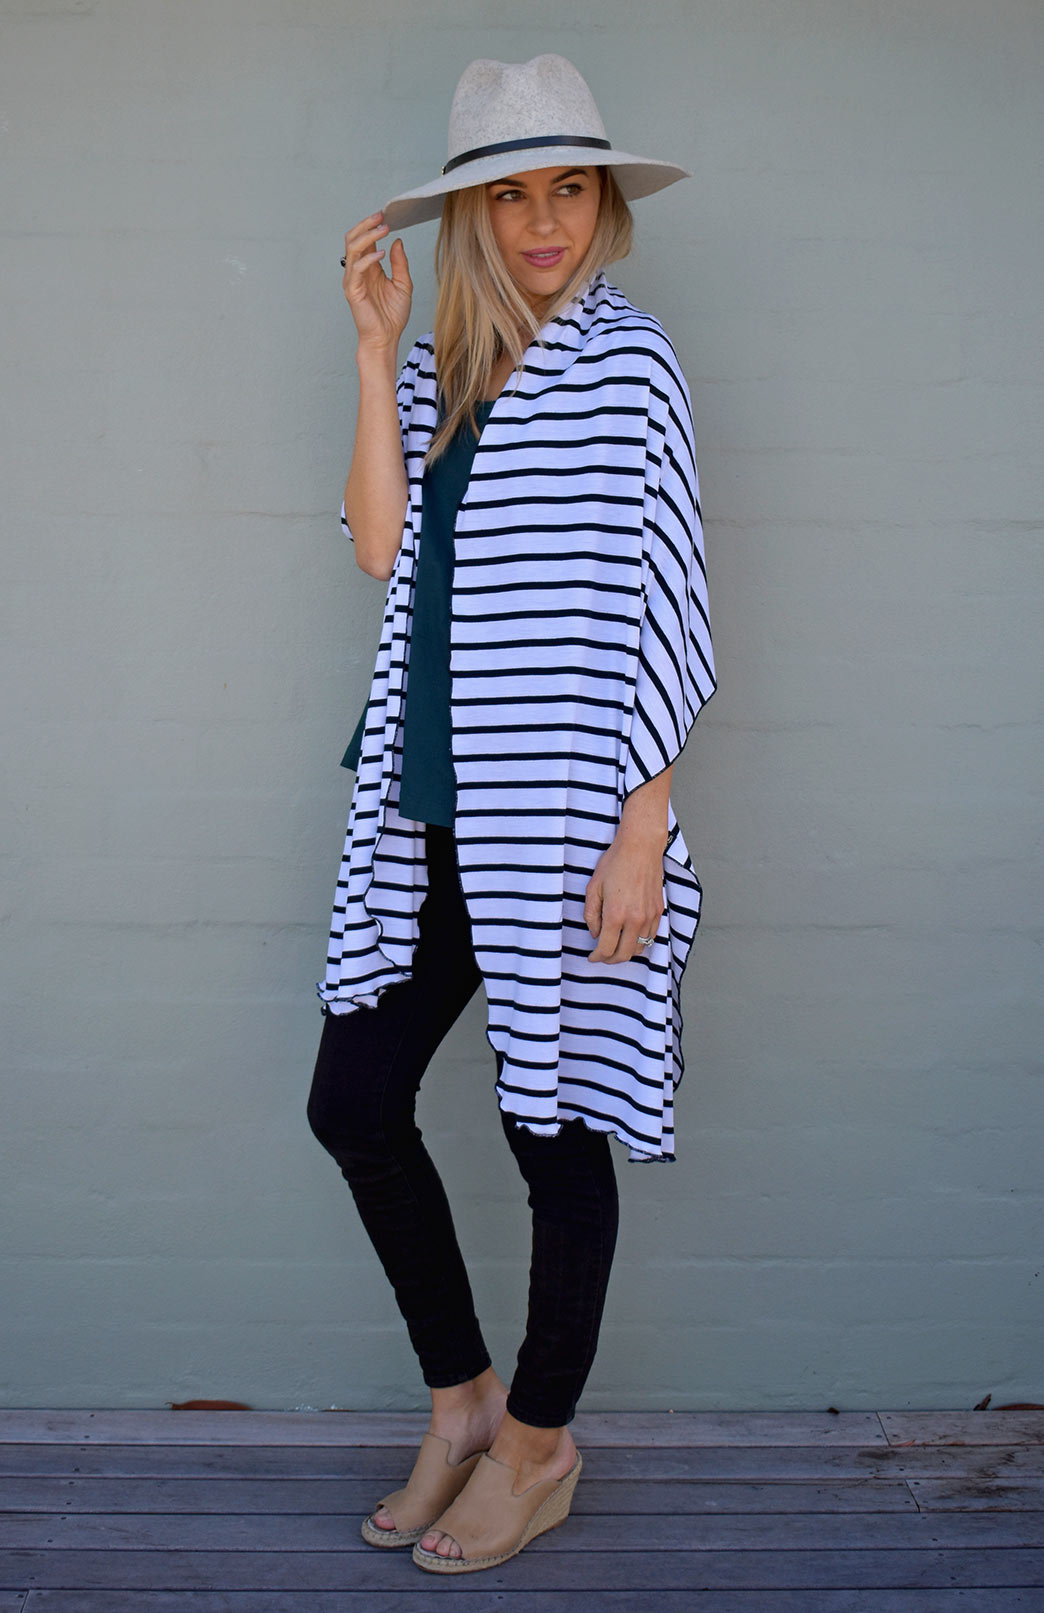 Scarves - Patterned - Women's White & Black French Stripe Wide Merino Wool Wrap or Scarf - Smitten Merino Tasmania Australia